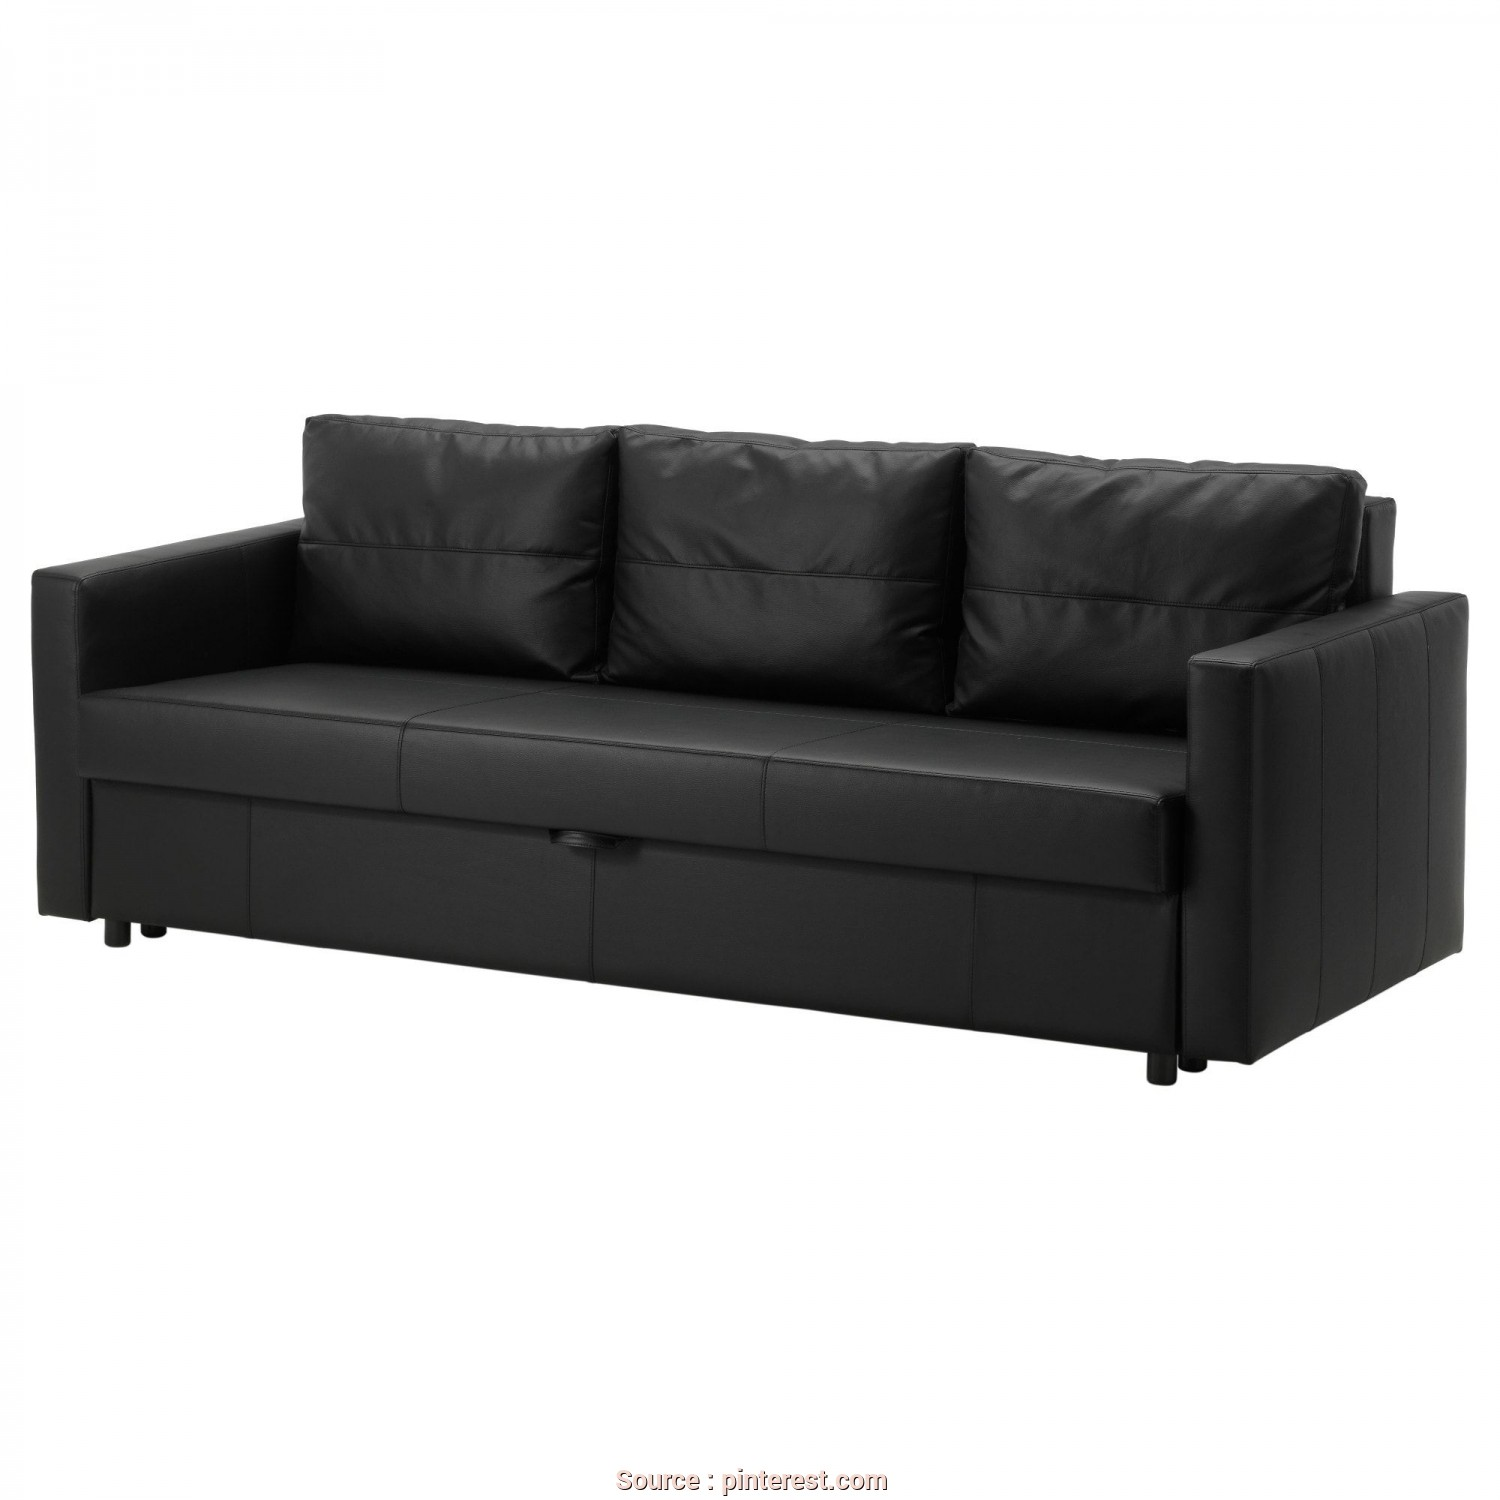 Rozkładany Fotel Ikea Backabro Mattarp Style, Eccellente LUGNVIK Sofa, With Chaise Lounge IKEA, Chaise, Be Placed To, Left Or Right Of, Sofa., Studio Ideas, Sofa Bed, Sofa, Sofa, With Chaise